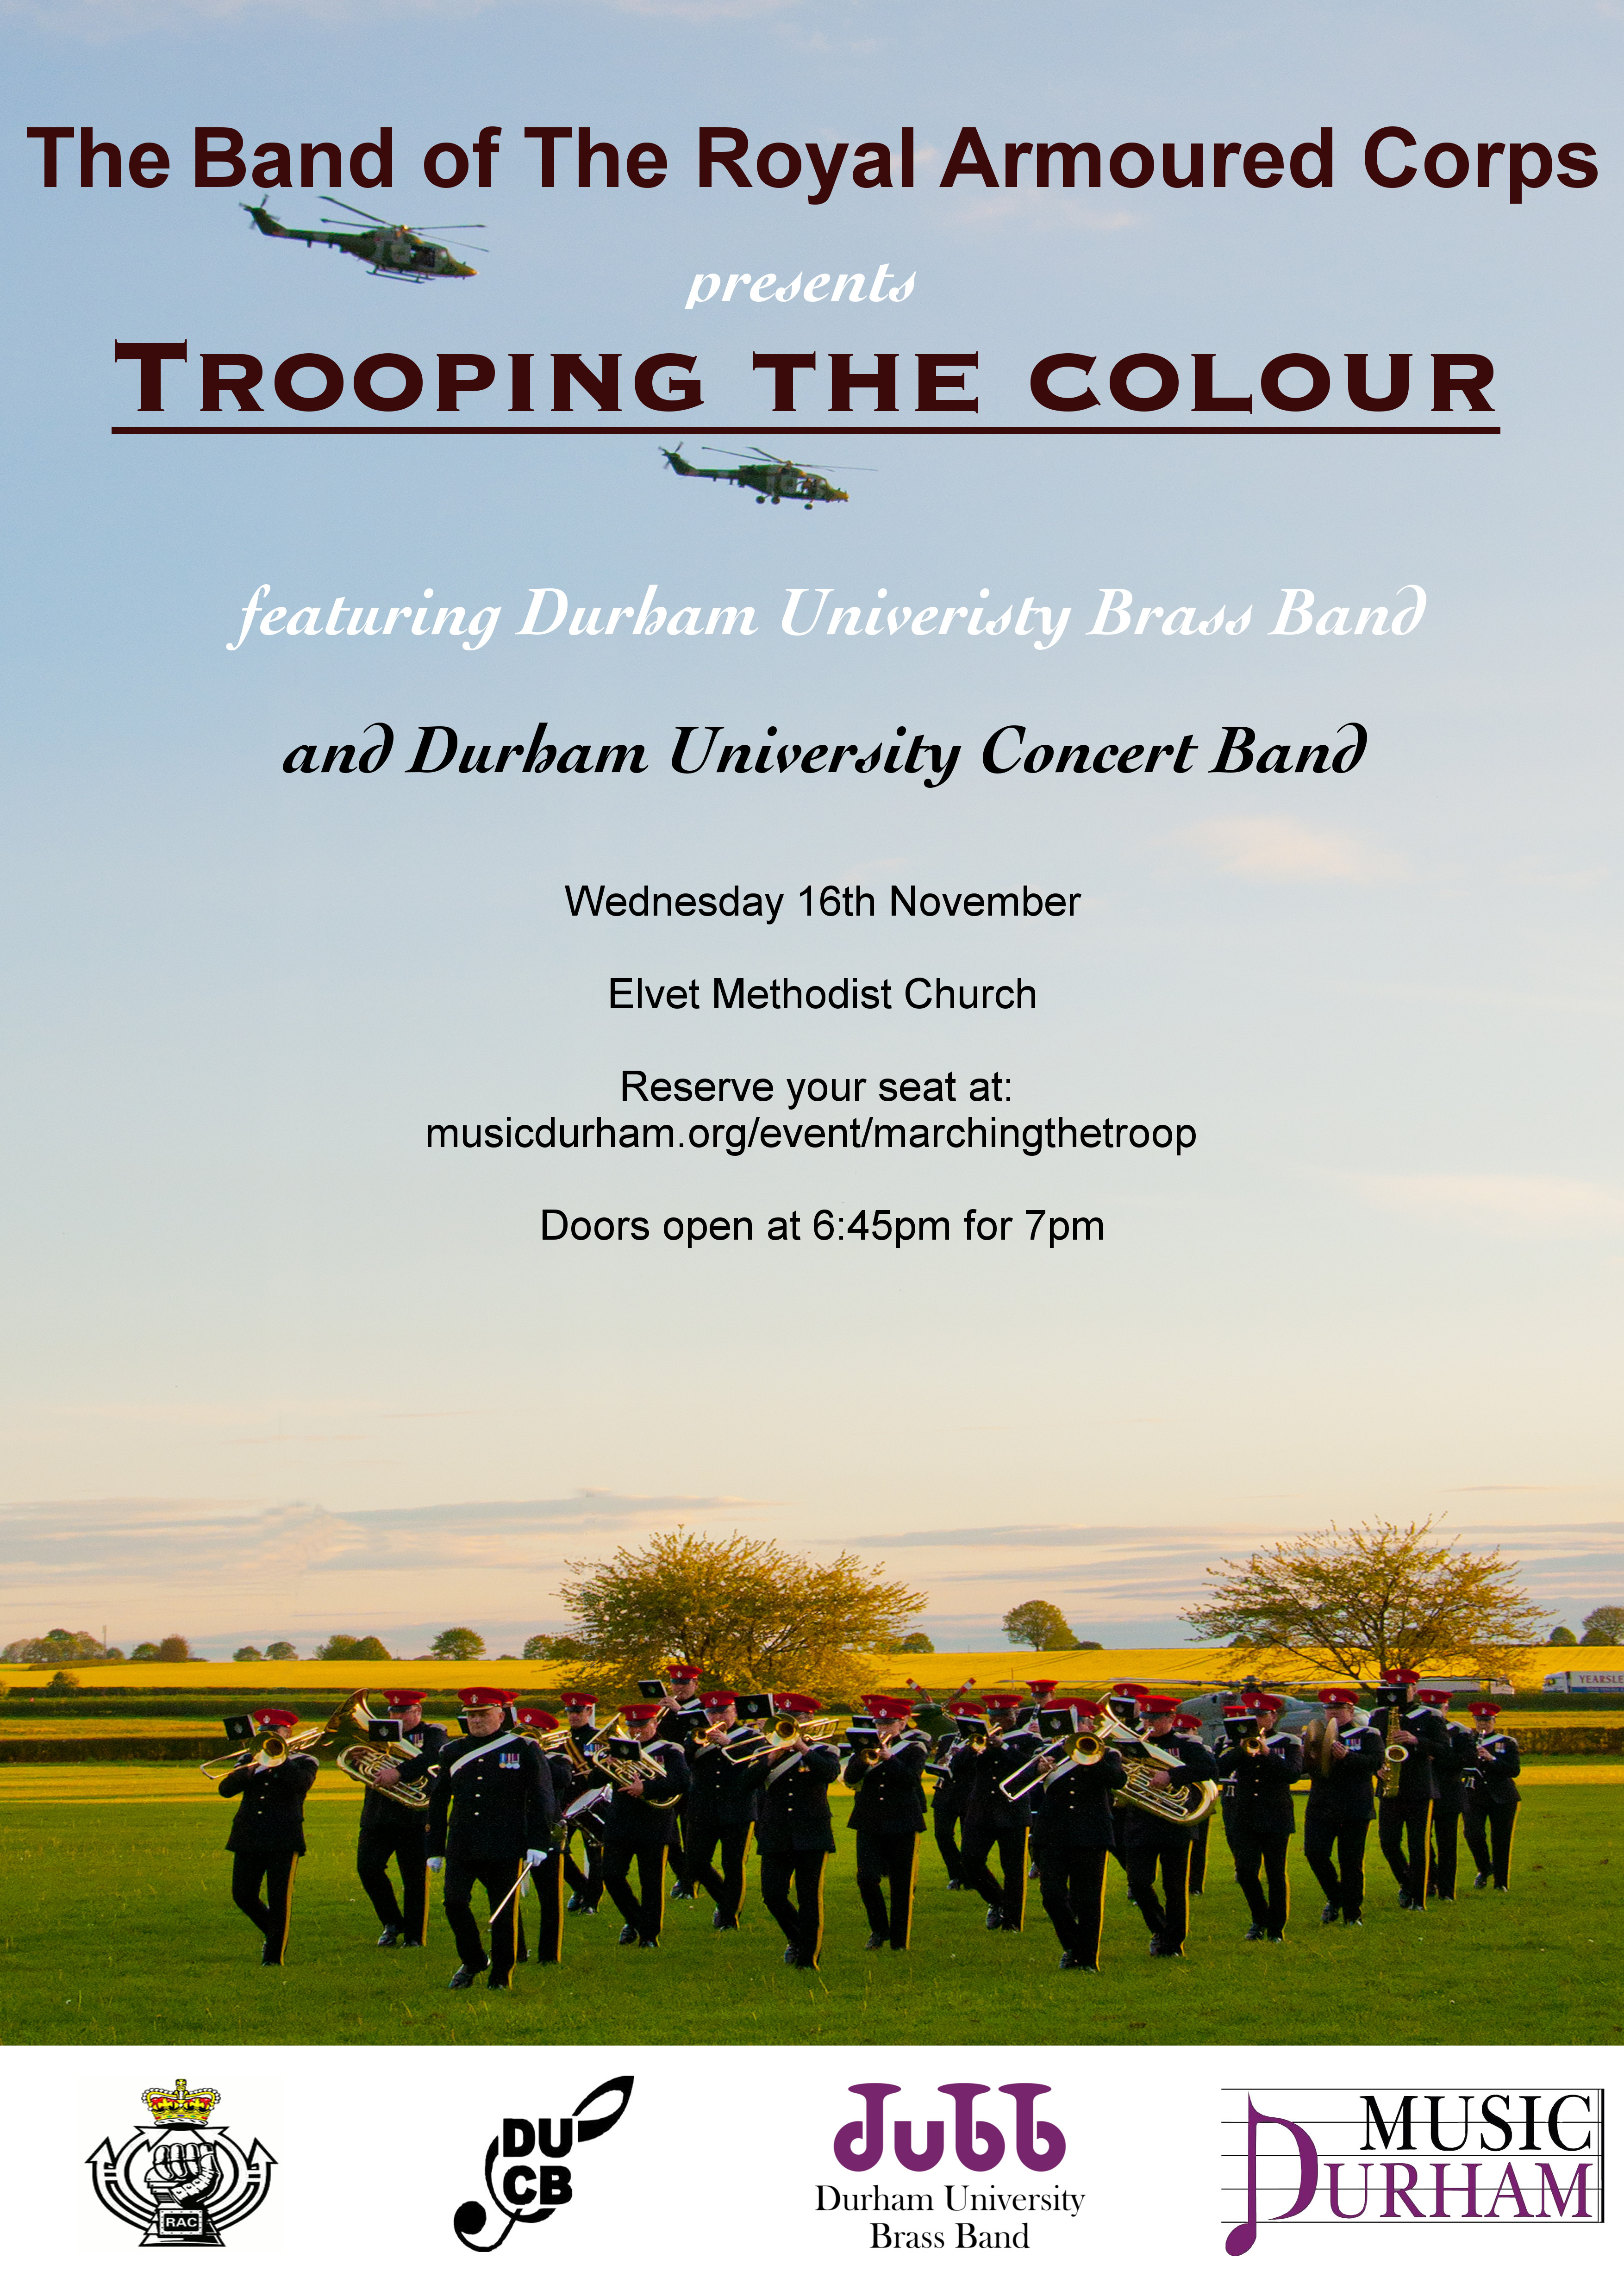 the-band-of-the-royal-armed-corp-concert-7